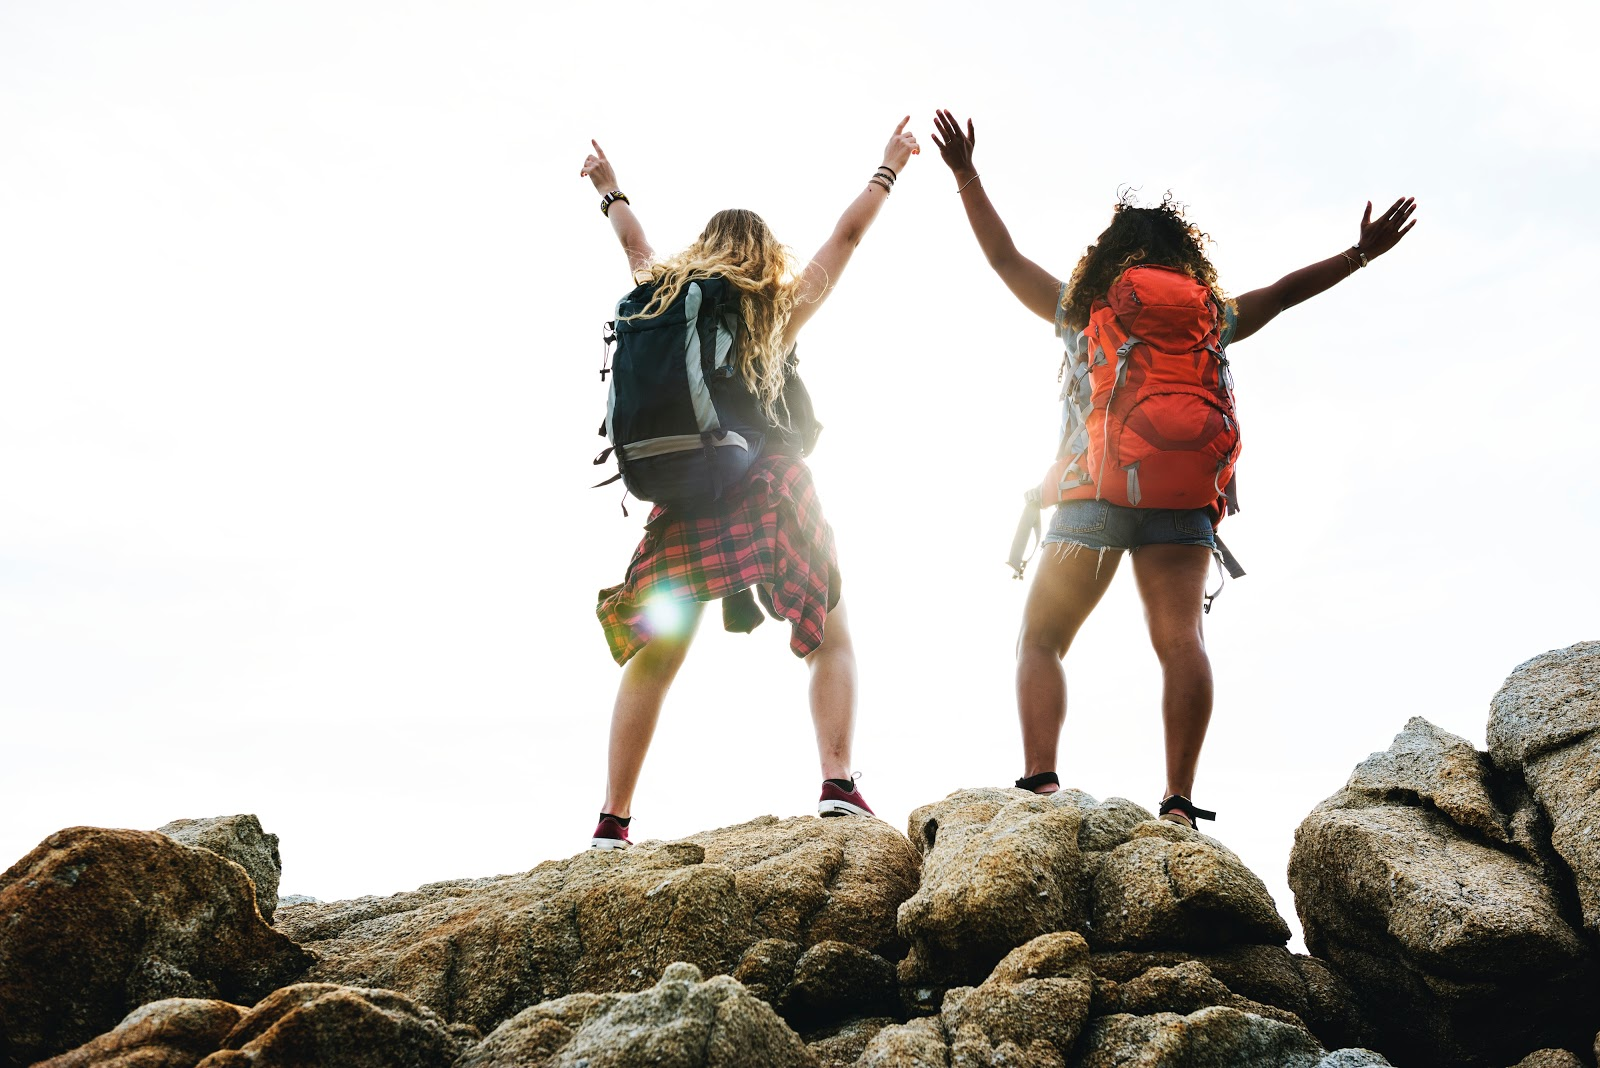 2 backpackers standing on a rock and lifting both hands to the sky